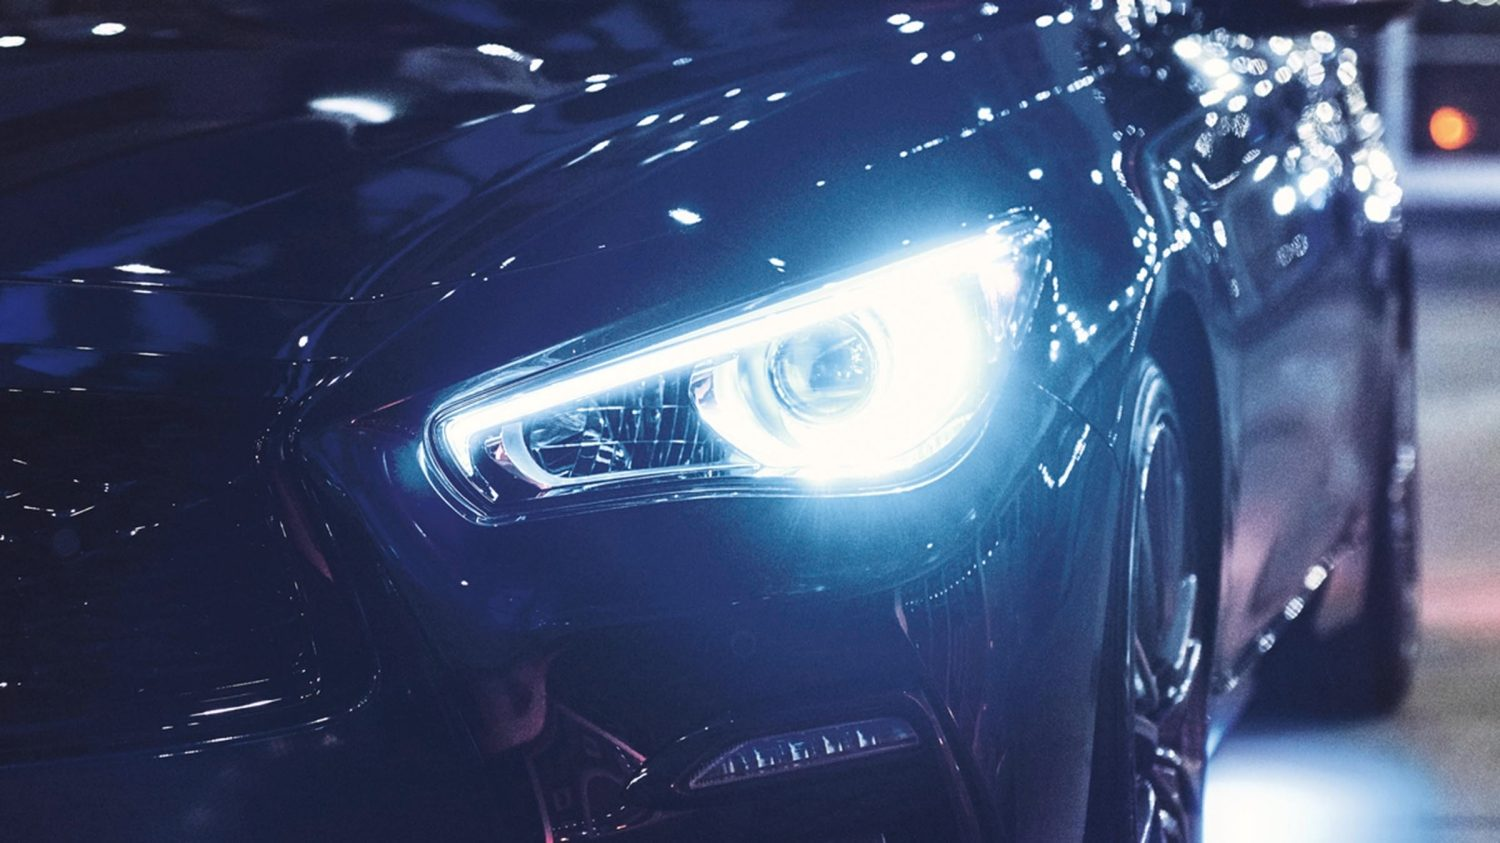 INFINITI Q50 Advanced Lighting System